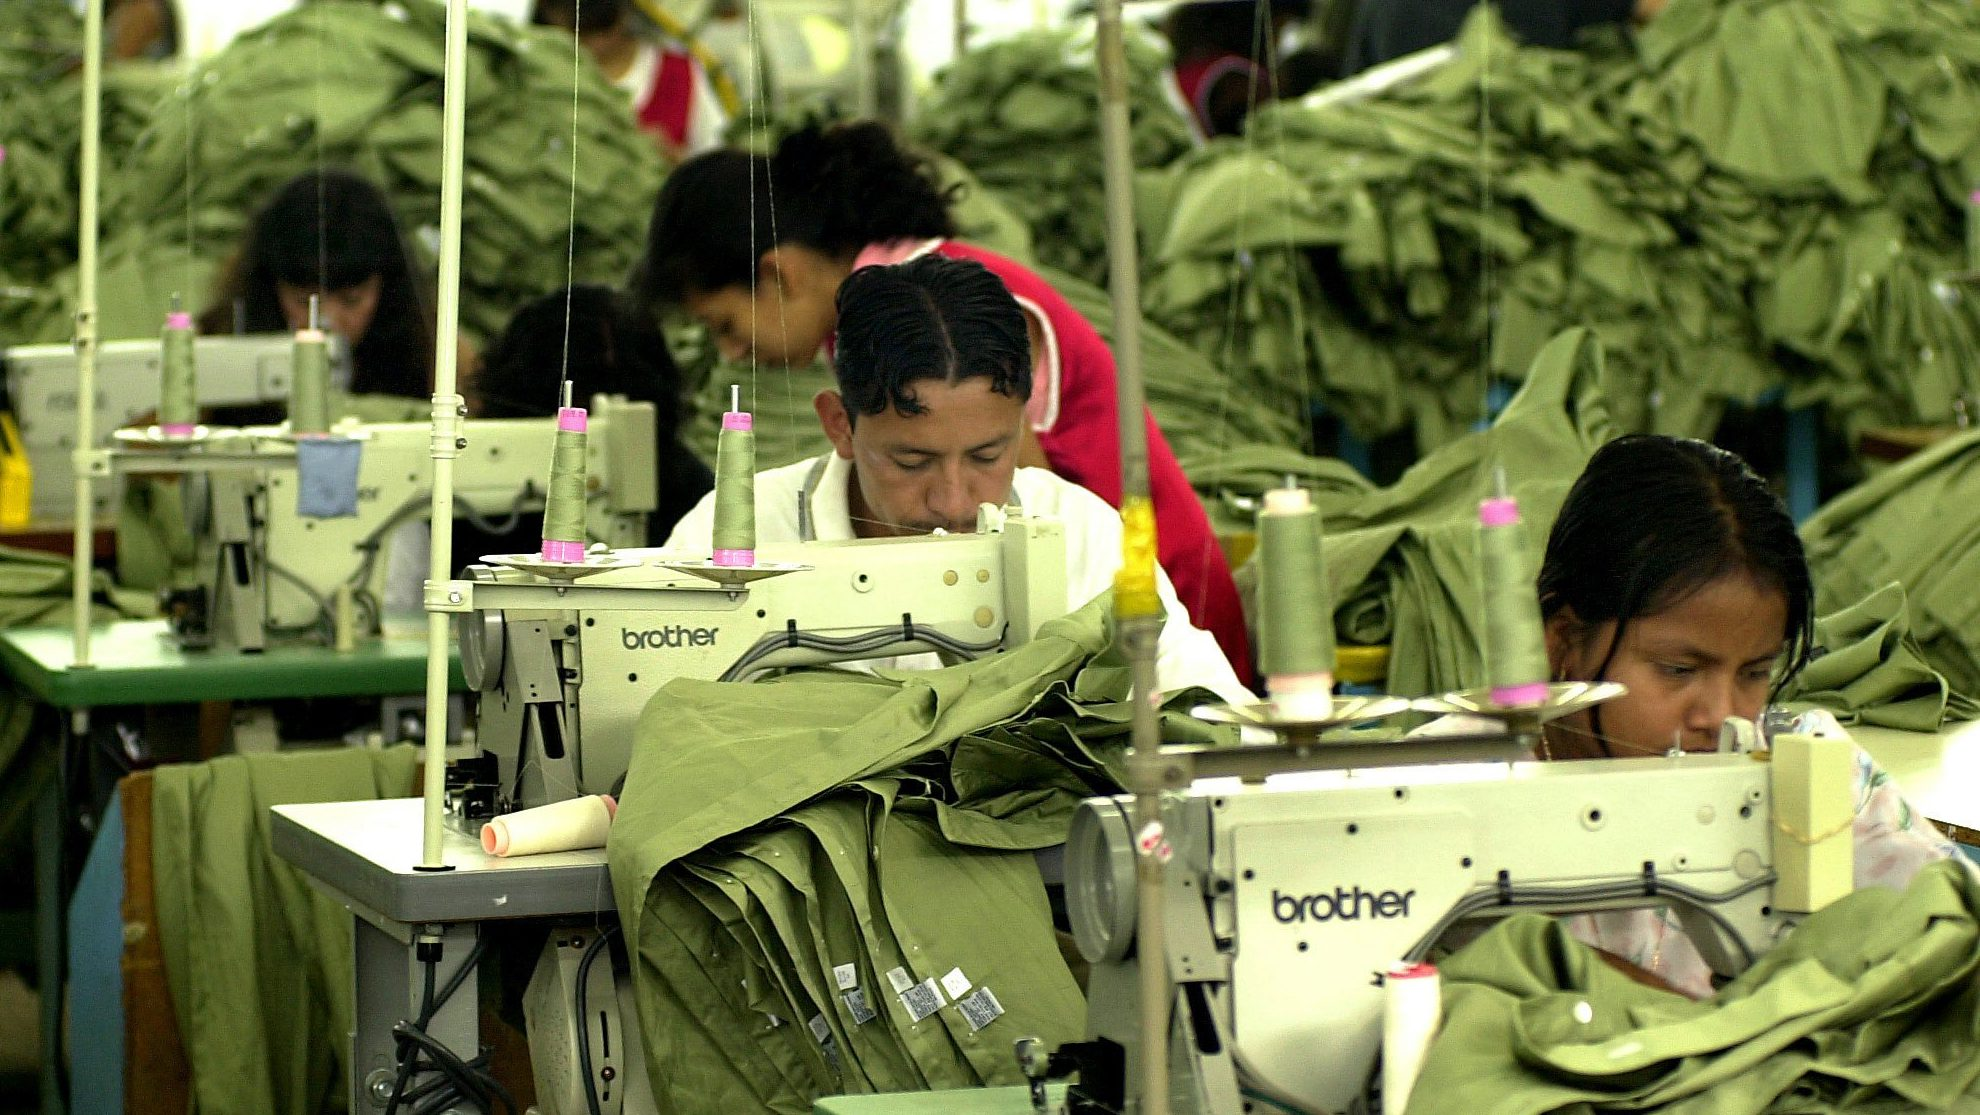 Workers sew at a maquila, or sweatshop, in Guatemala City, Guatemala on Tuesday, Oct. 2, 2001. Central American sweatshops have an uncertain future due to the Sept. 11 attacks on the United States, which could affect the exportation of goods (AP Photo/Jaime Puebla)